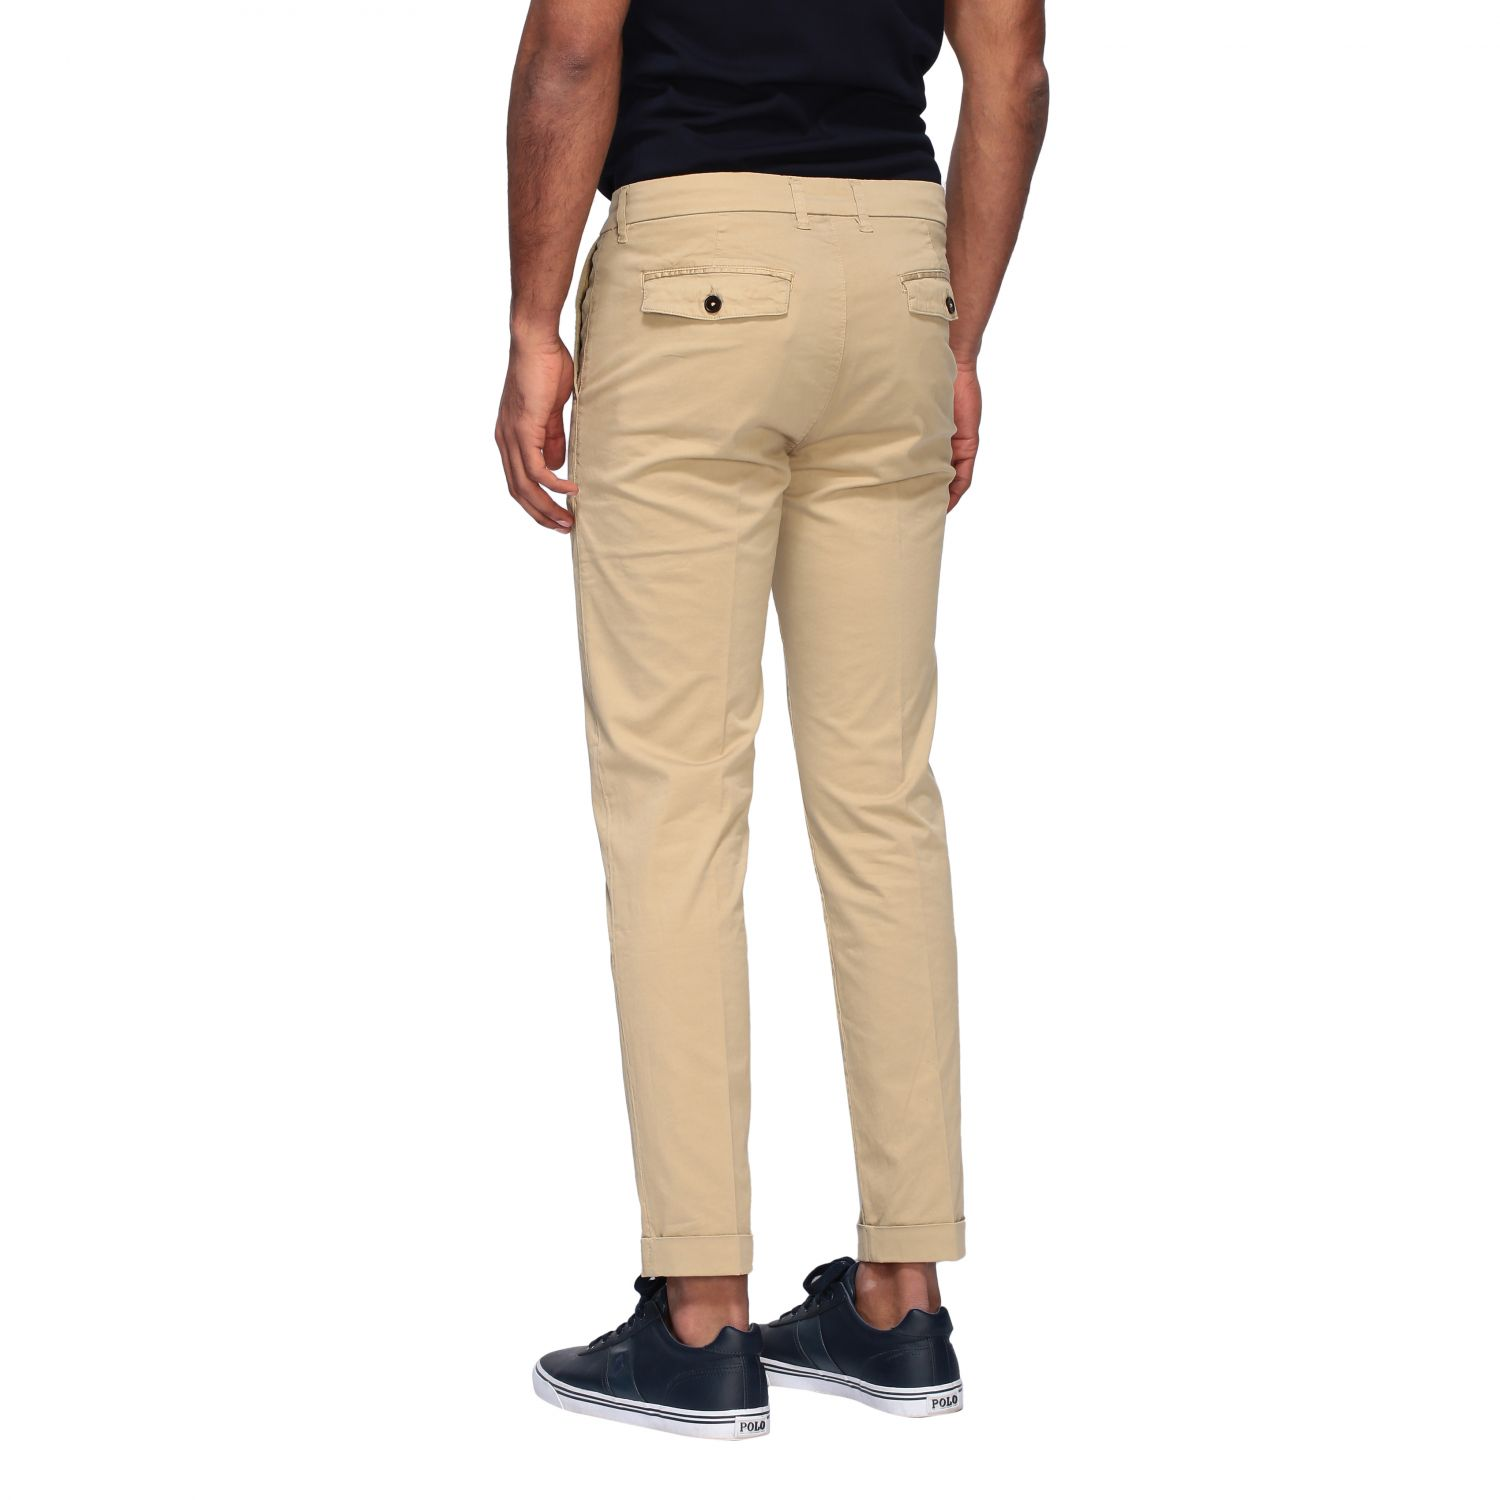 Pantalone Fay in gabardine stretch beige 3